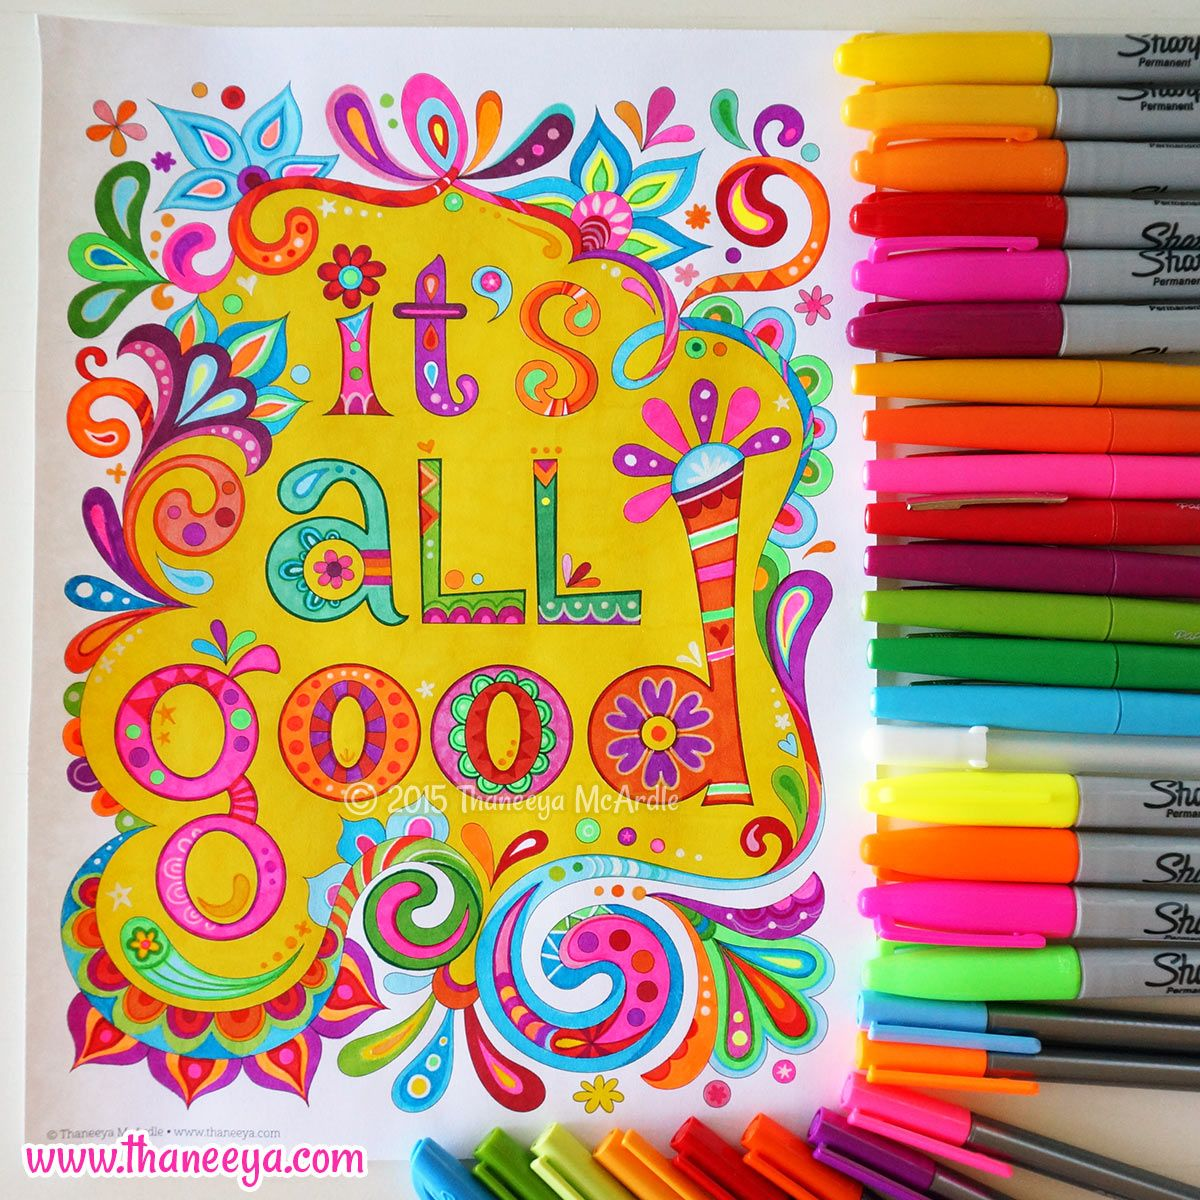 its all good coloring page from thaneeya mcardles good vibes coloring book httpwwwamazoncomgpproduct1574219952refas_li_tlieutf8cam